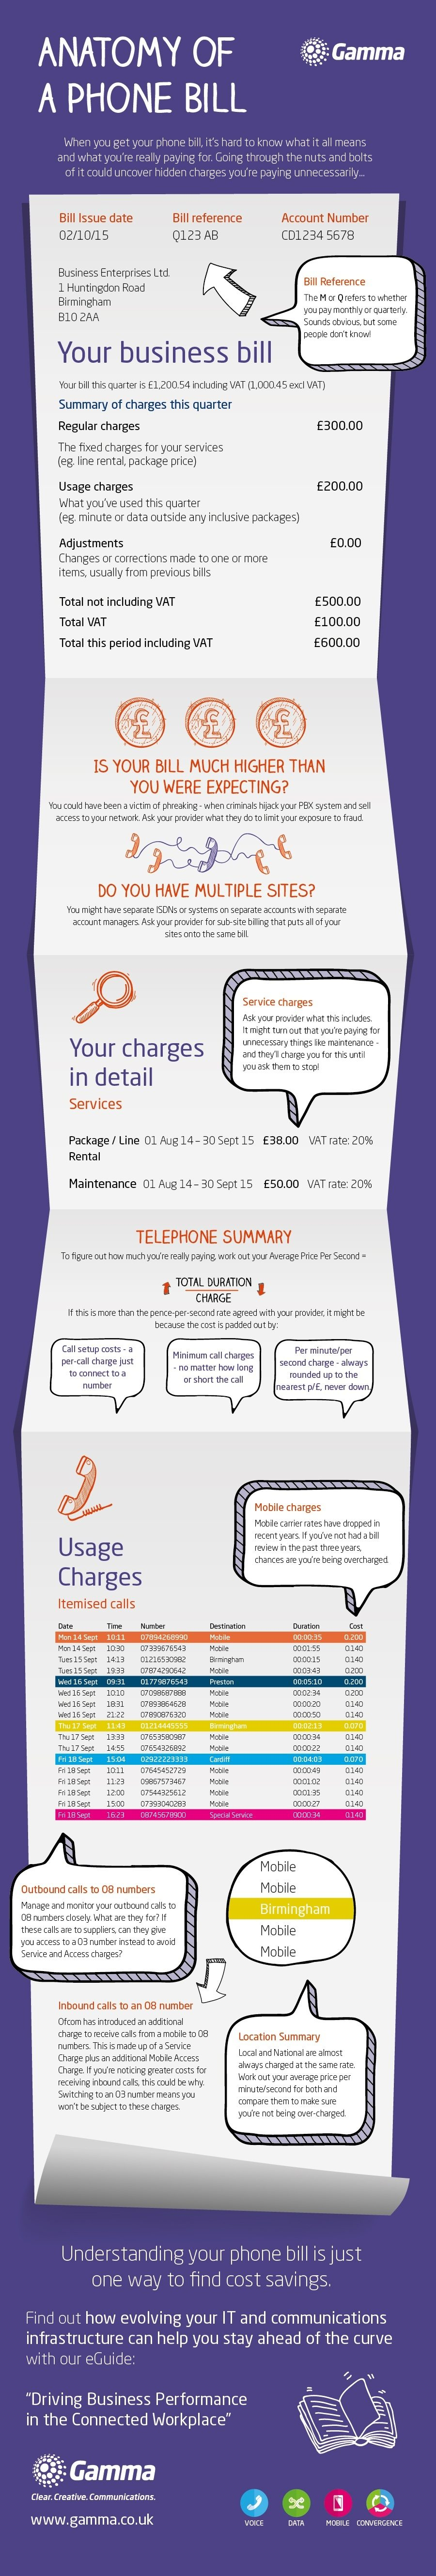 How to read a phone bill - Gamma